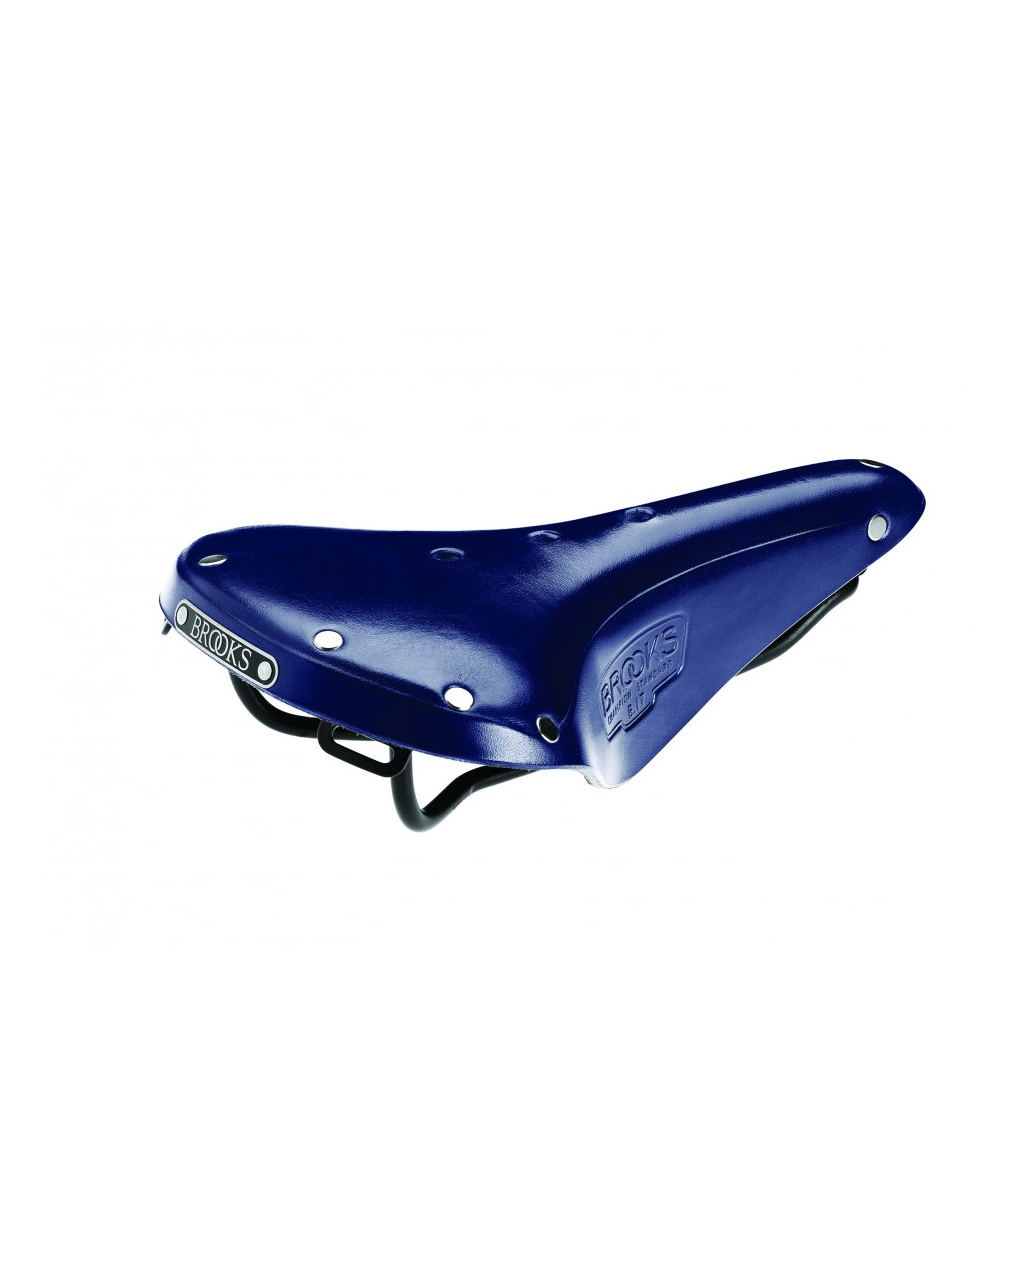 Brooks B17 Standard - Royal Blue